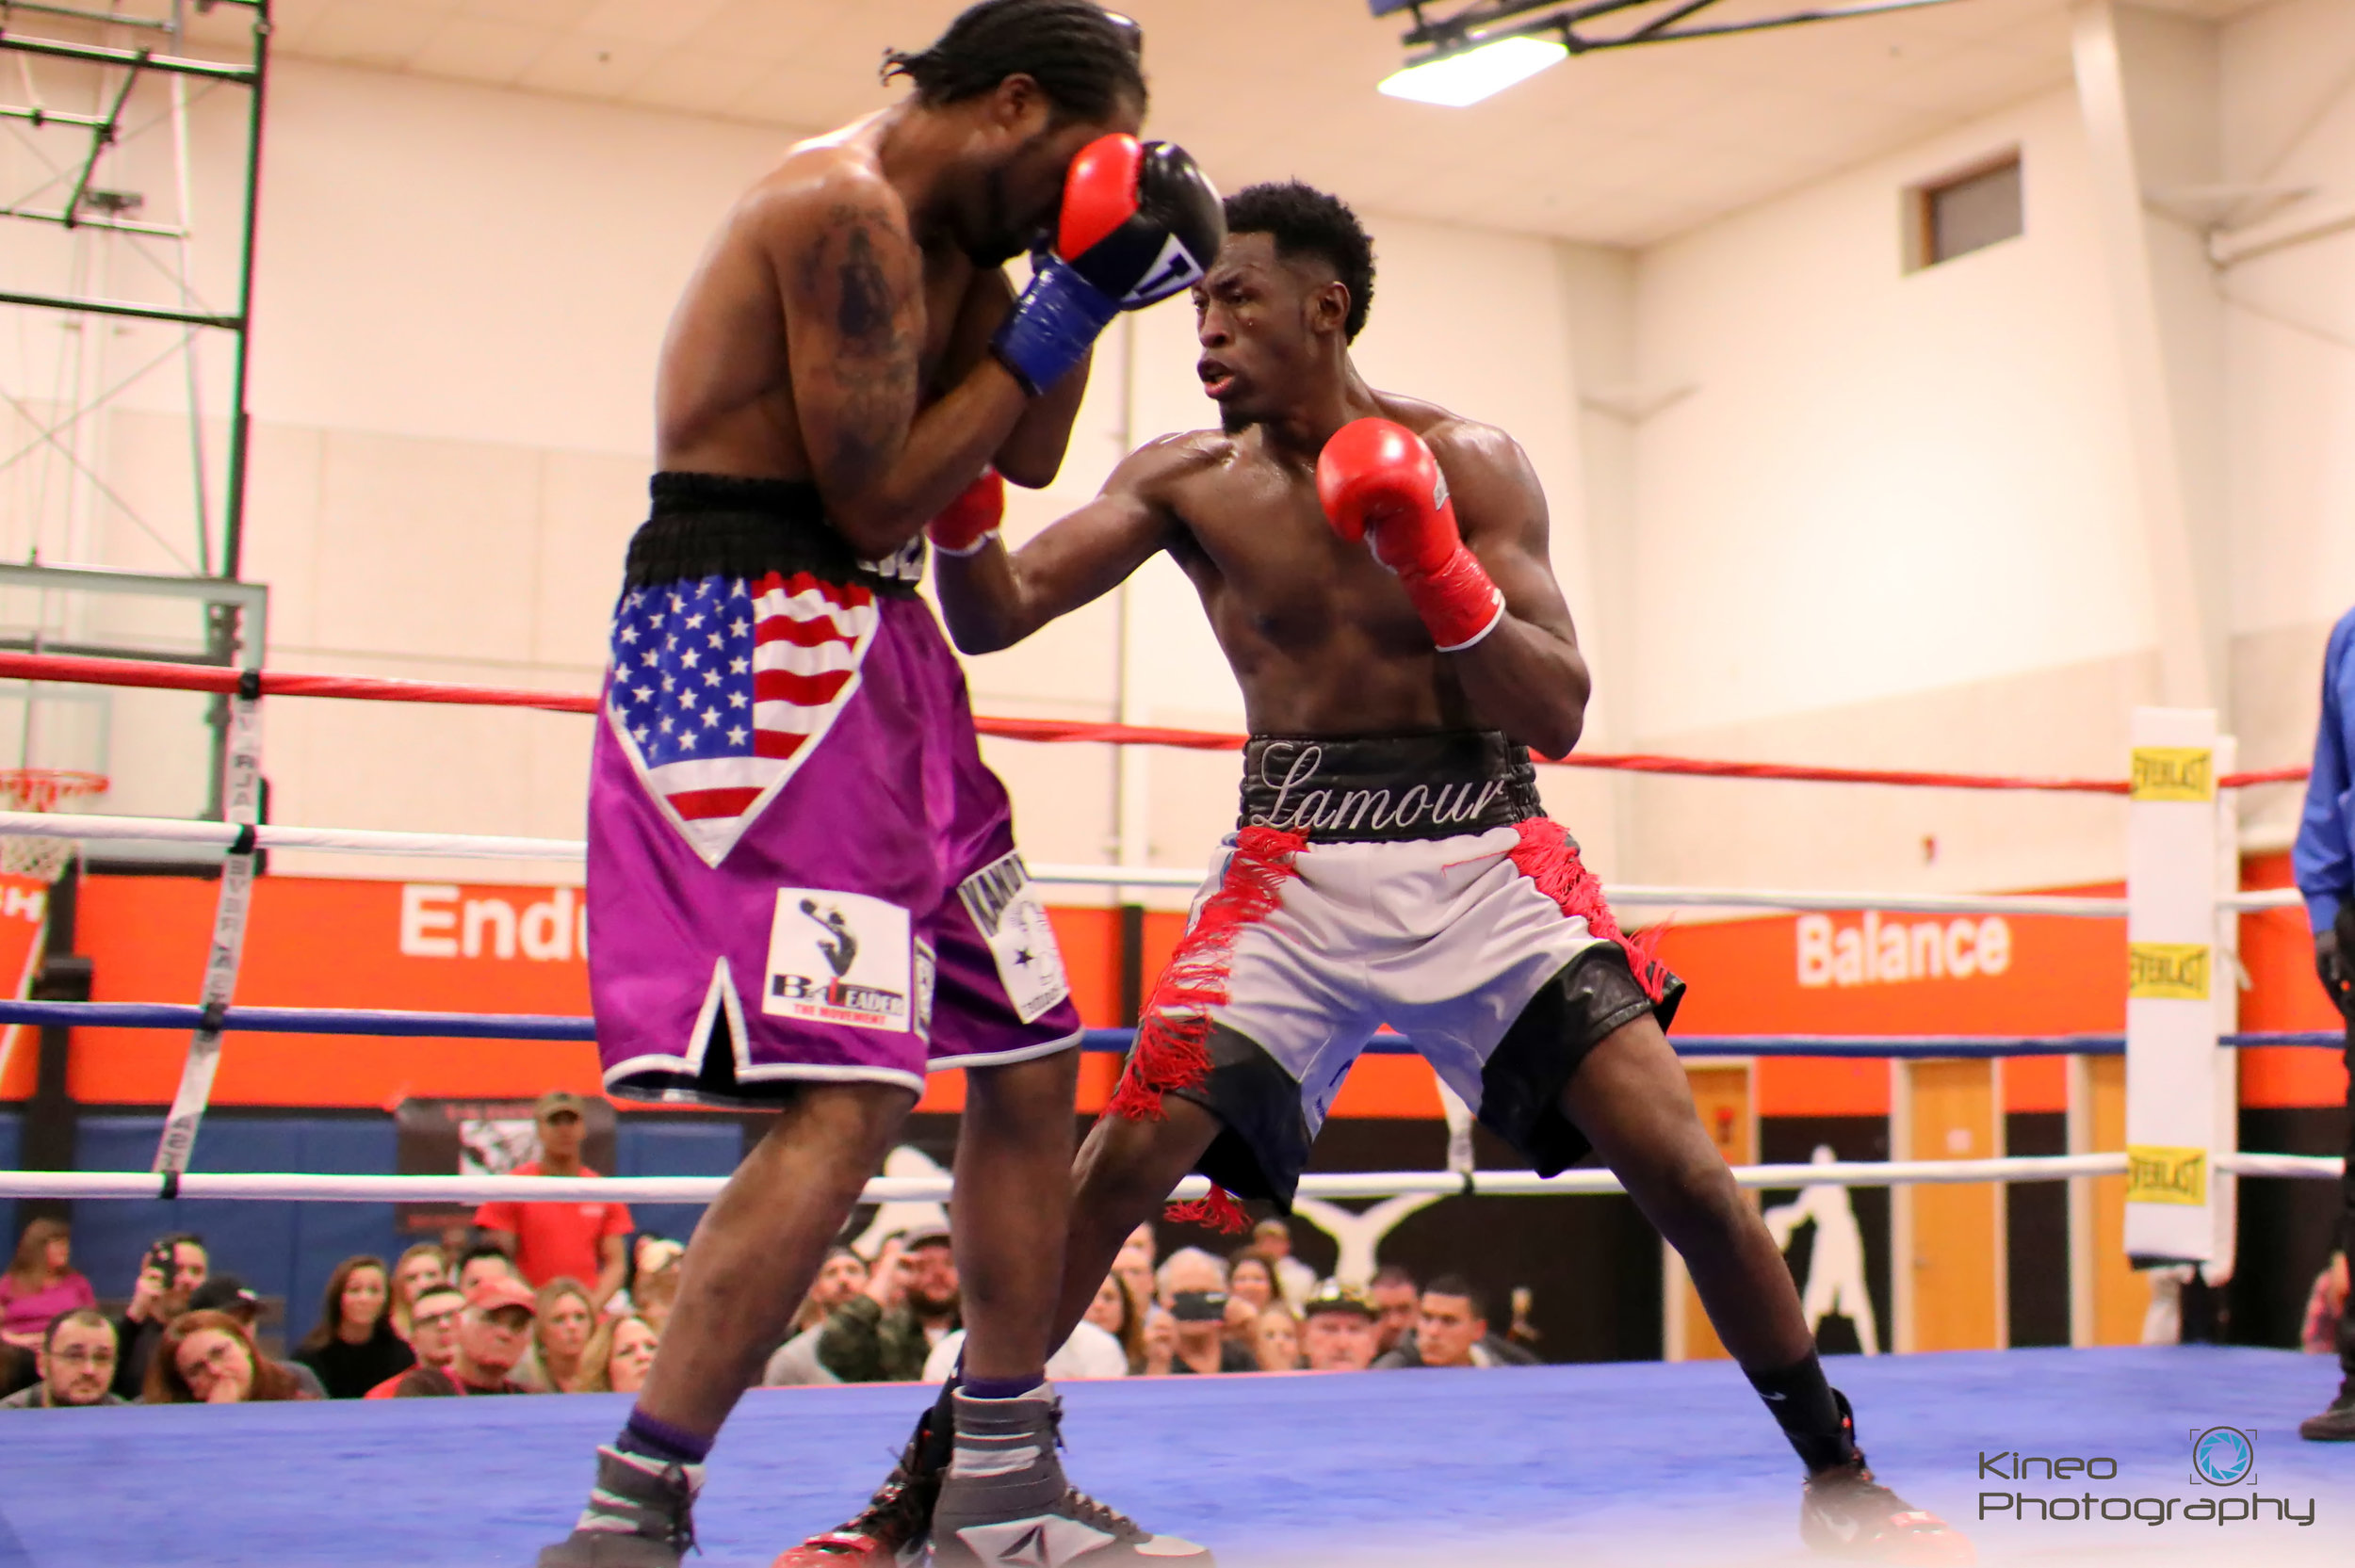 """Portland Boxing Club's pro middleweight Russell """"The Haitian Sensation"""" Lamour, Jr. (right) at the Skowhegan Pro-Am event on December 1, 2018.  Photo courtesy Kineo Photography."""